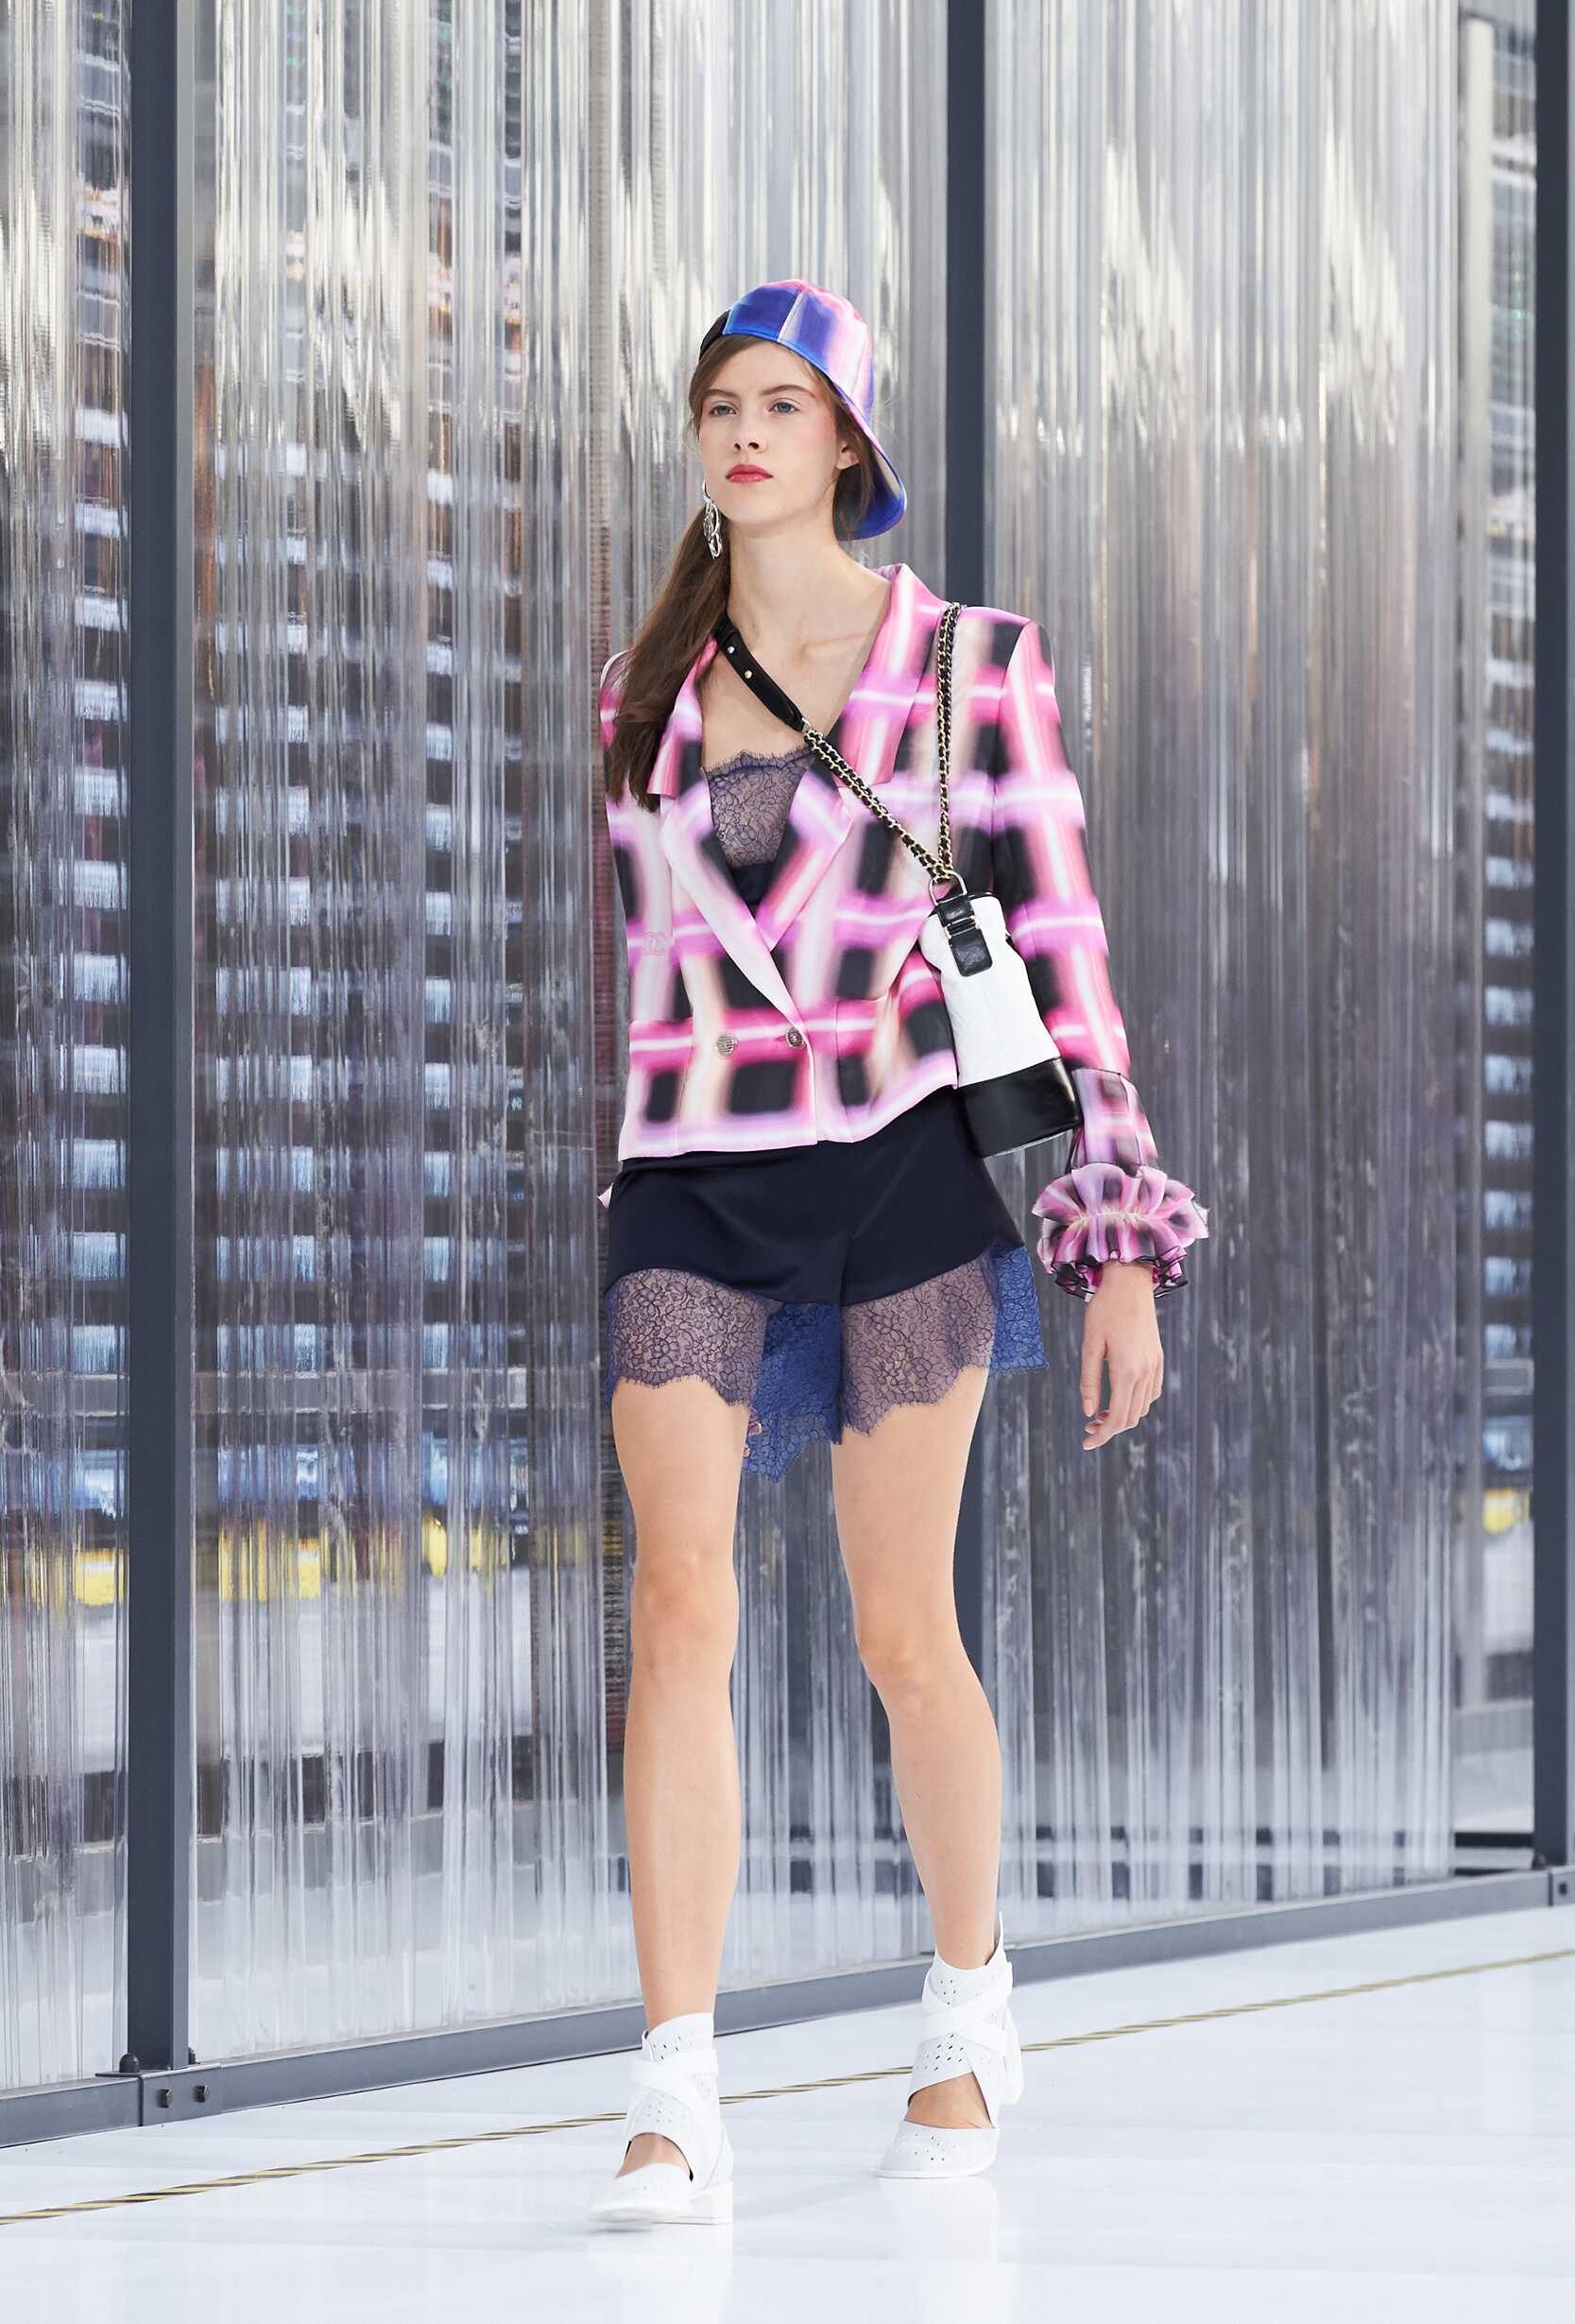 SS 2017 Chanel Fashion Show Paris